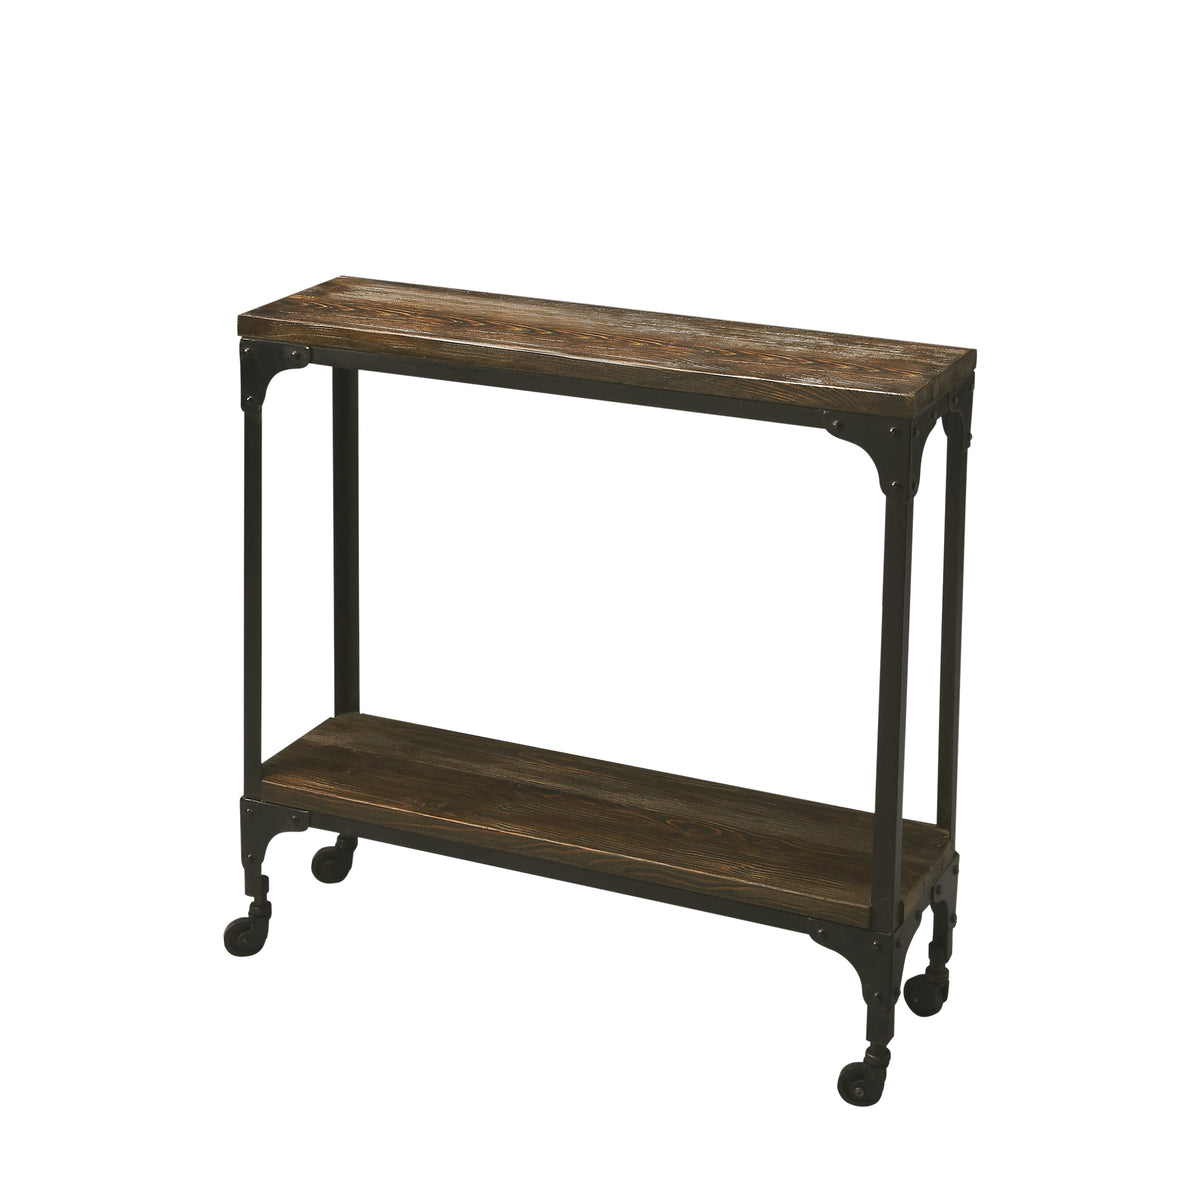 GANDOLPH - INDUSTRIAL CHIC - CONSOLE TABLE